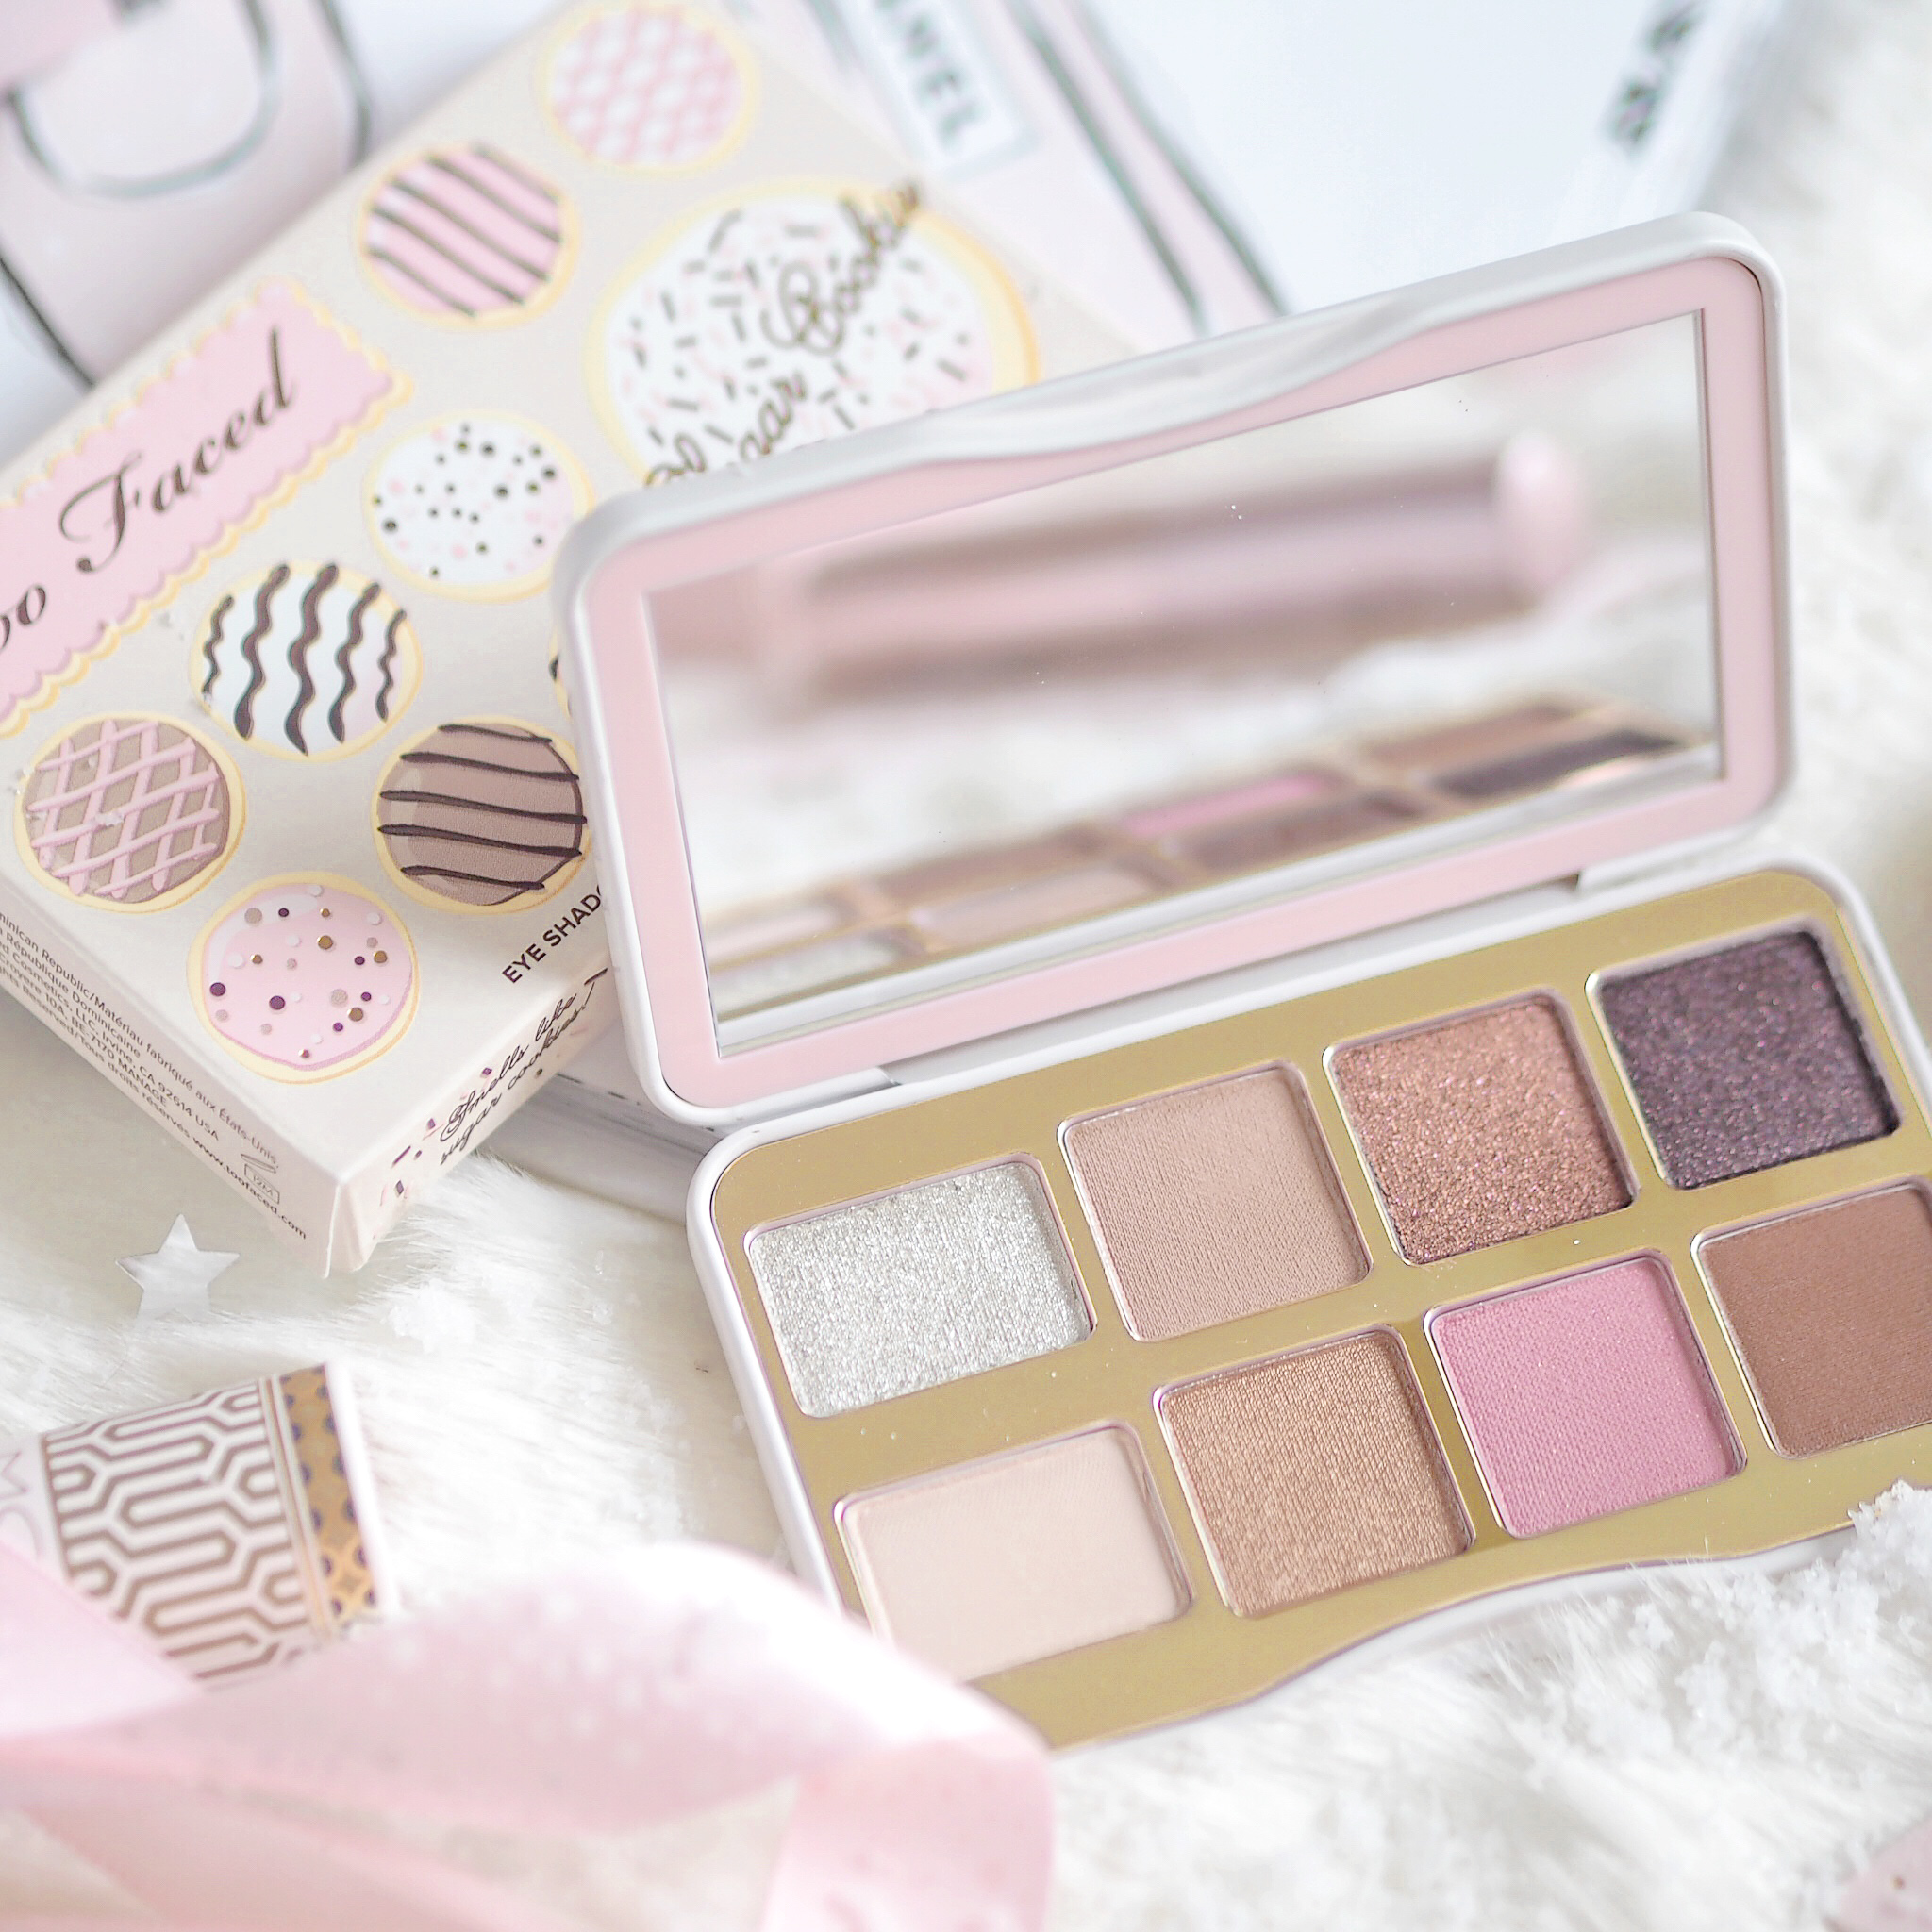 Seasons Treatings: Perfectly Pretty Christmas Gift Ideas For Her, Too Faced Sugar Cookie Palette